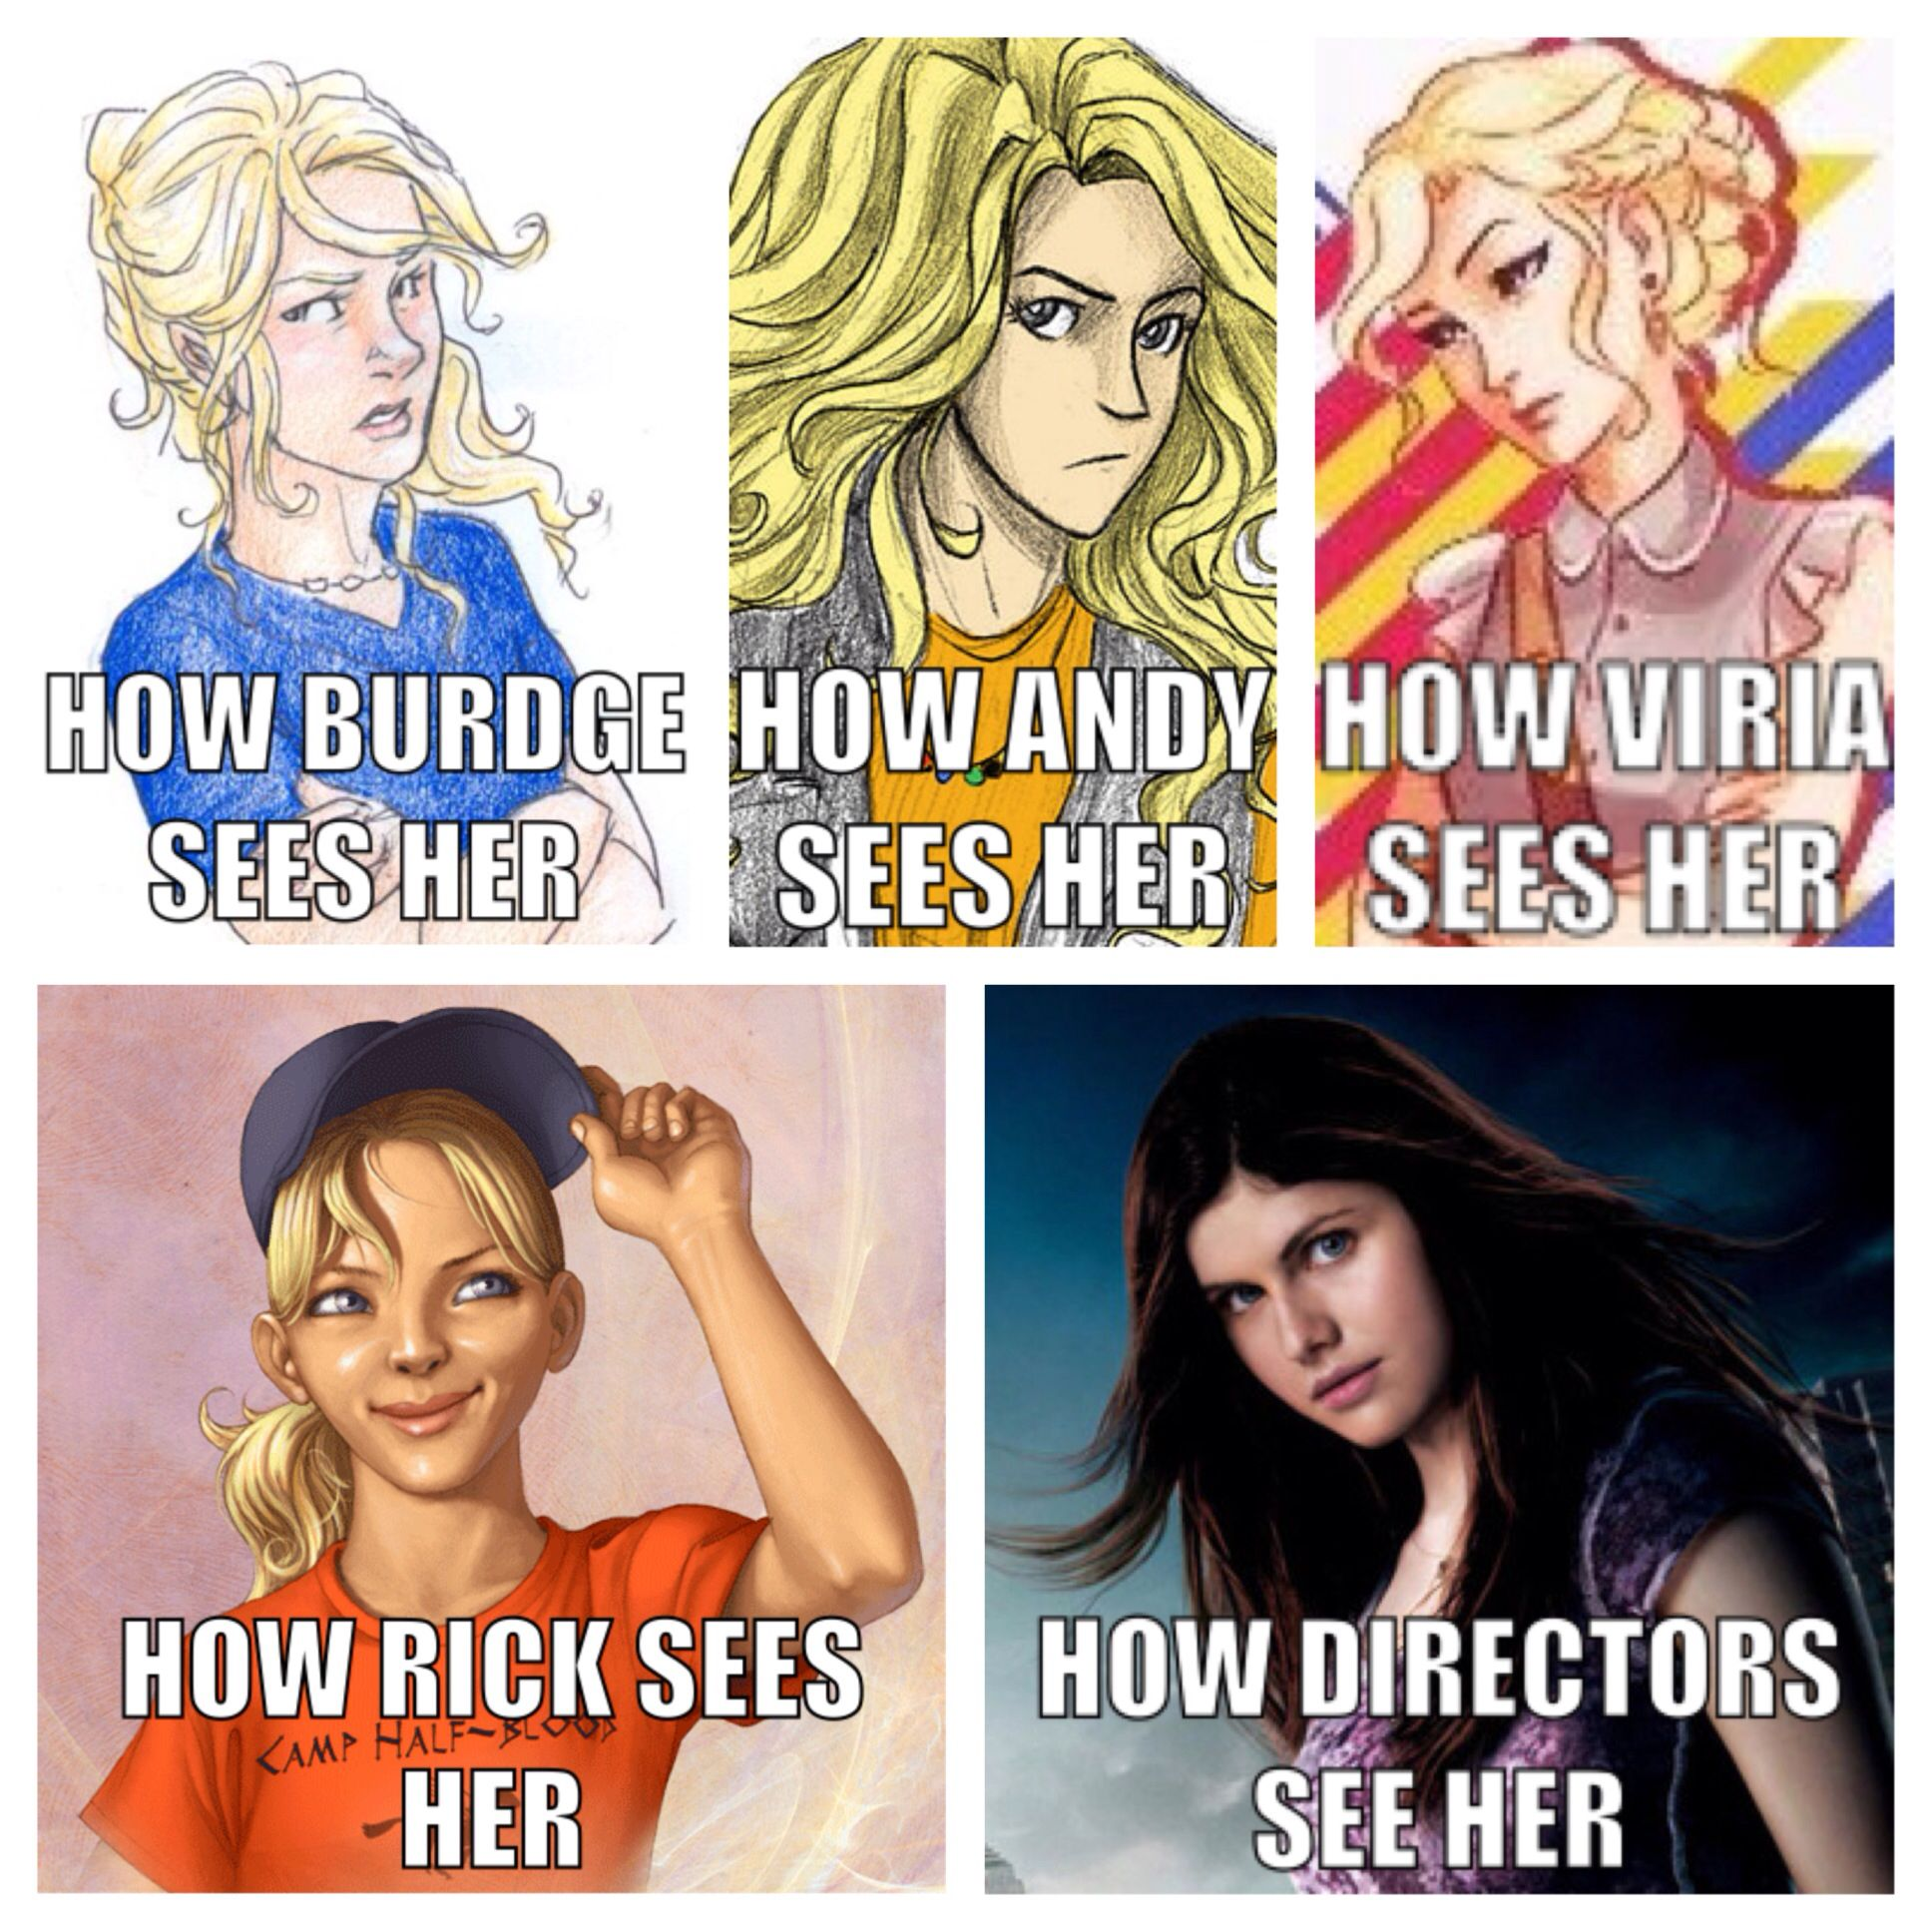 I don't know who to choose cuz I love burdge and andy and viria's art. Probably Viria tho, if I had to. Rick's one is alright tho bc it was in the first book when she was young. I won't even touch Alexandra Daddario.